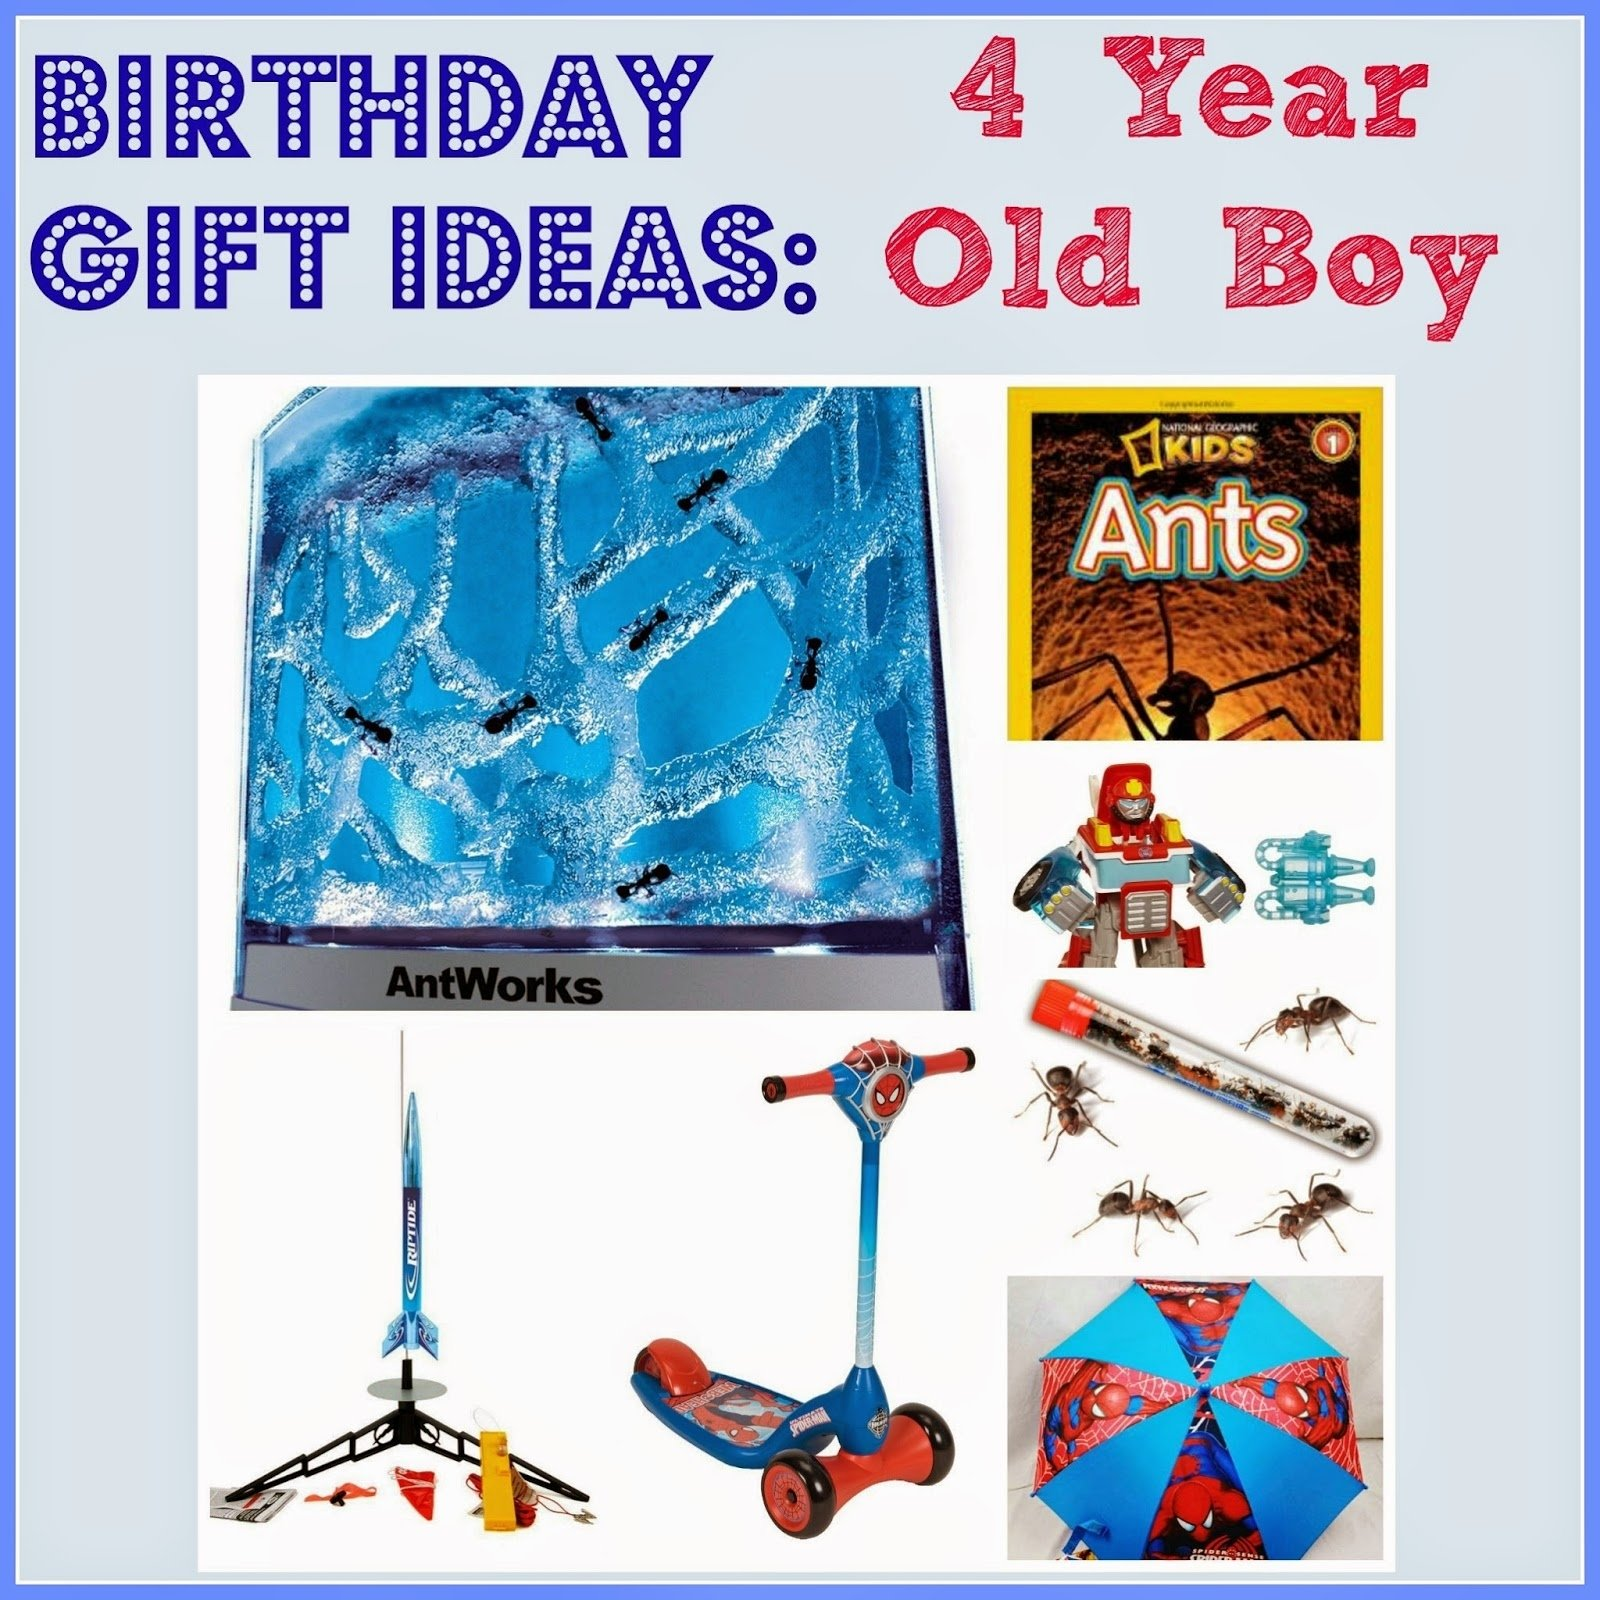 10 Unique Gift Ideas For Four Year Old Boy year old boy birthday gift ideas home design ideas 12 2020